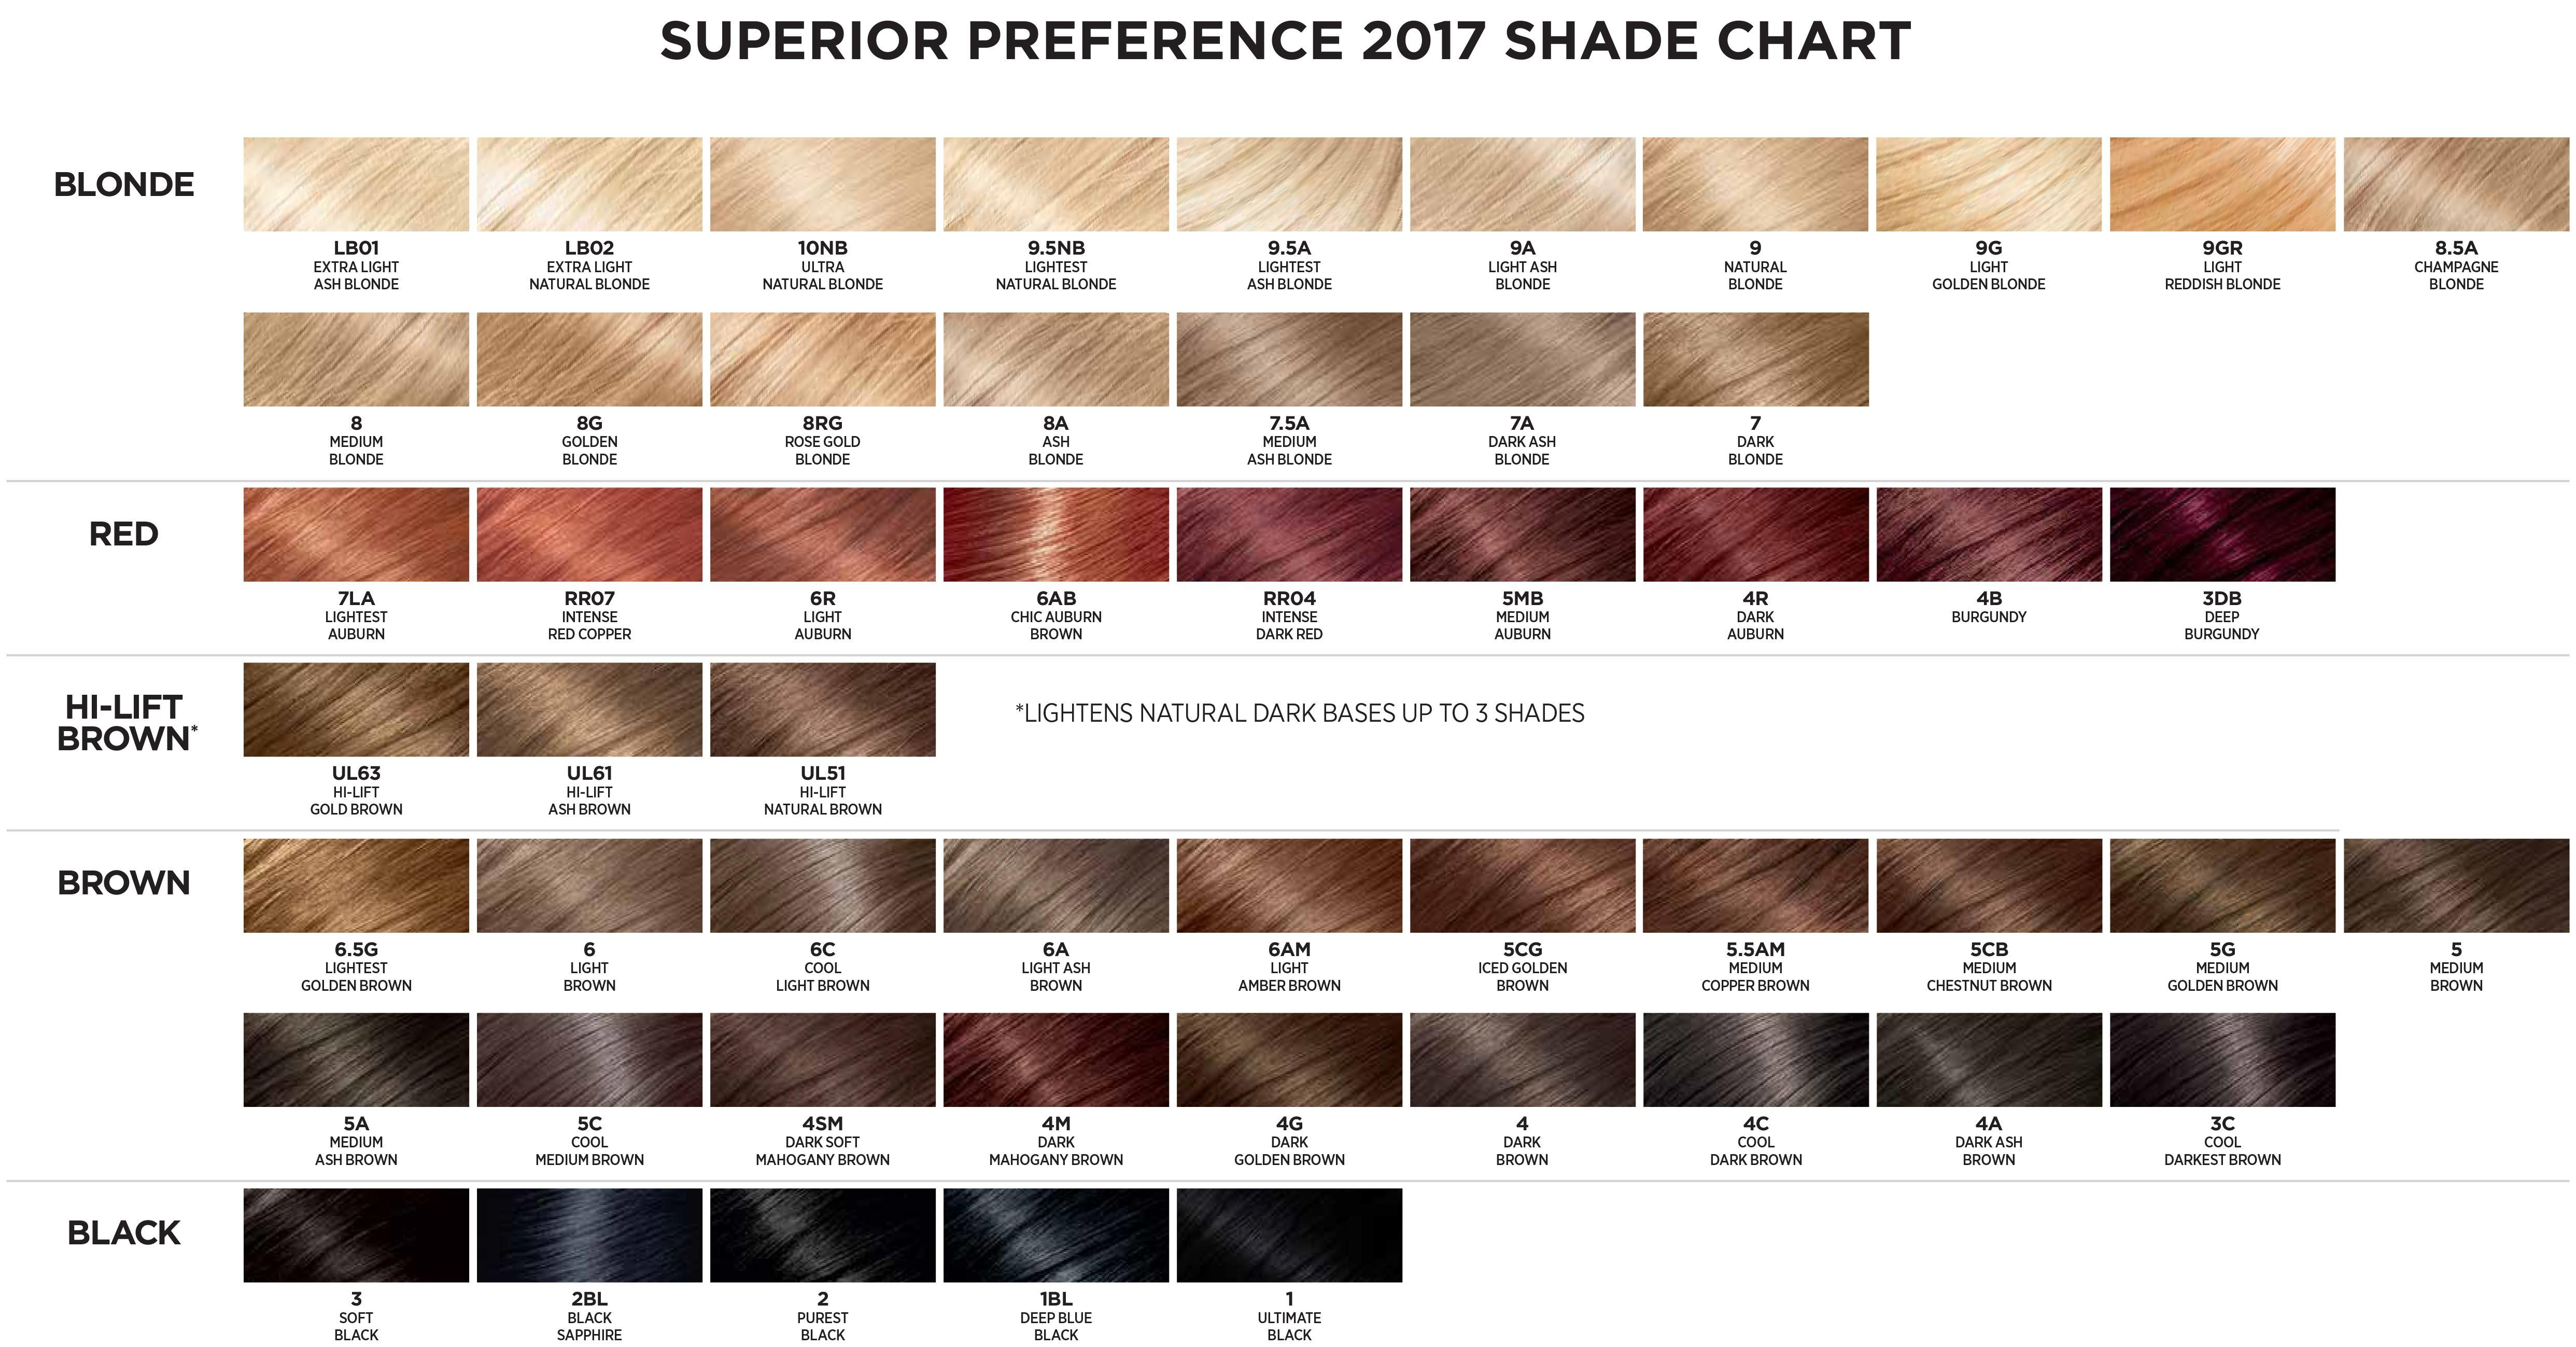 2392c632 31ba 4623 8588 43dd14140336 Jpg Cb521182891 Jpg 4 969 2 598 Pixels Loreal Hair Color Chart Hair Color Chart Loreal Preference Hair Color